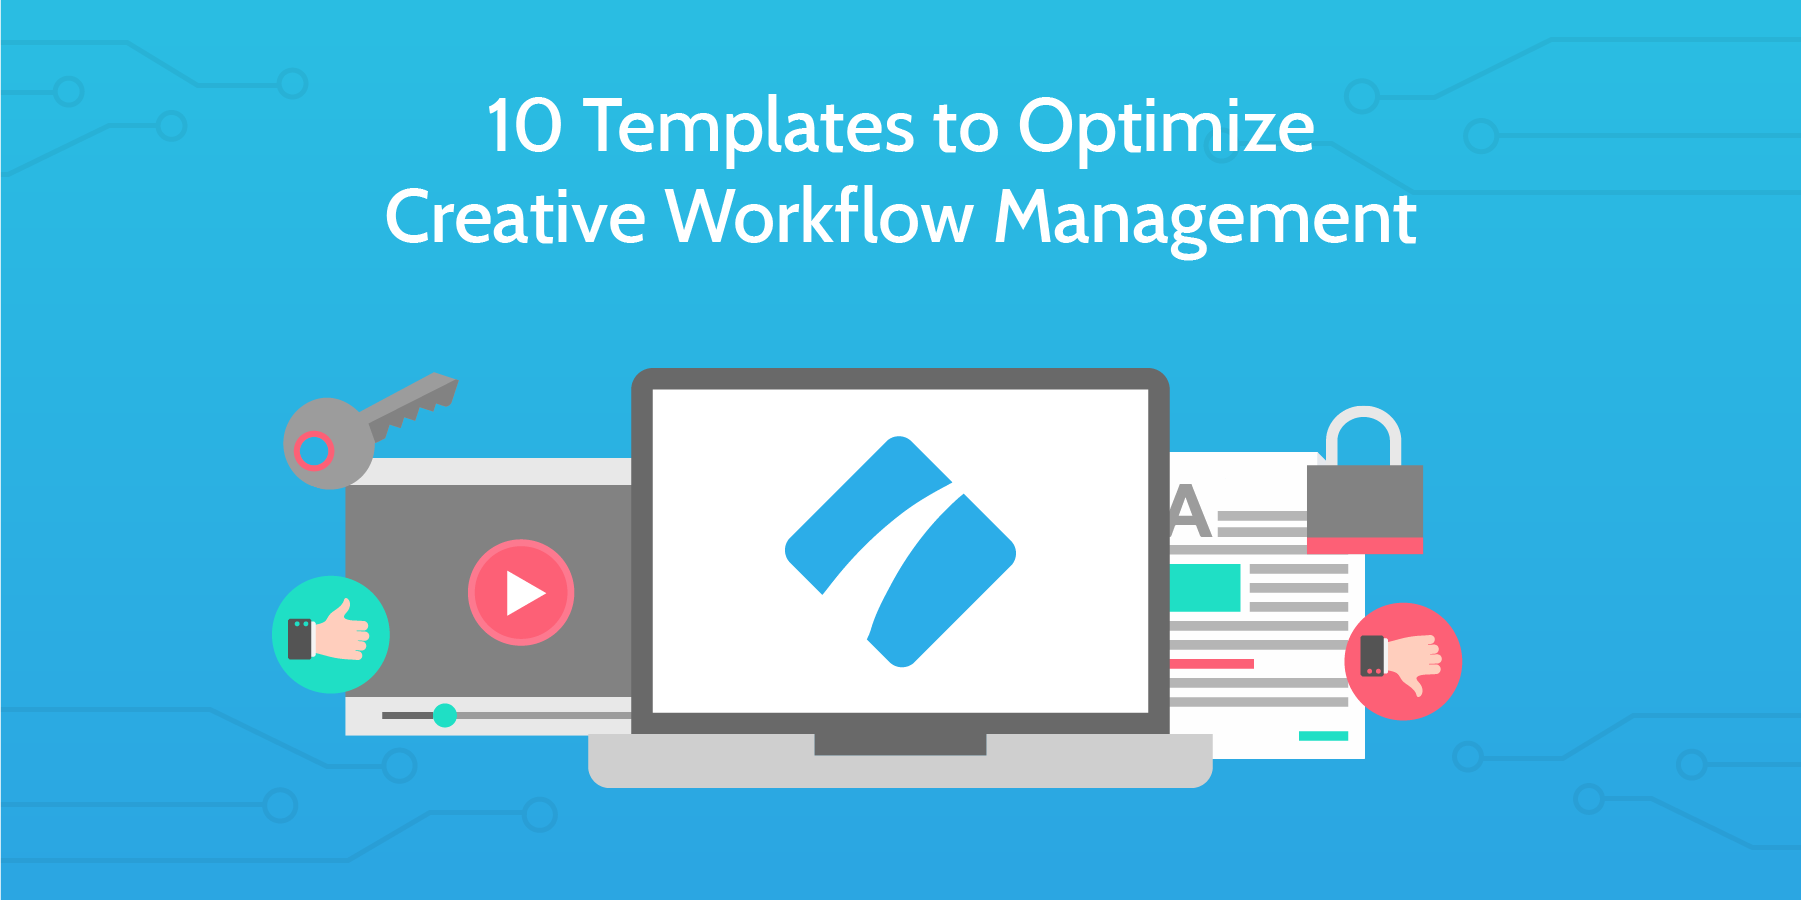 10 Templates to Optimize Creative Workflow Management